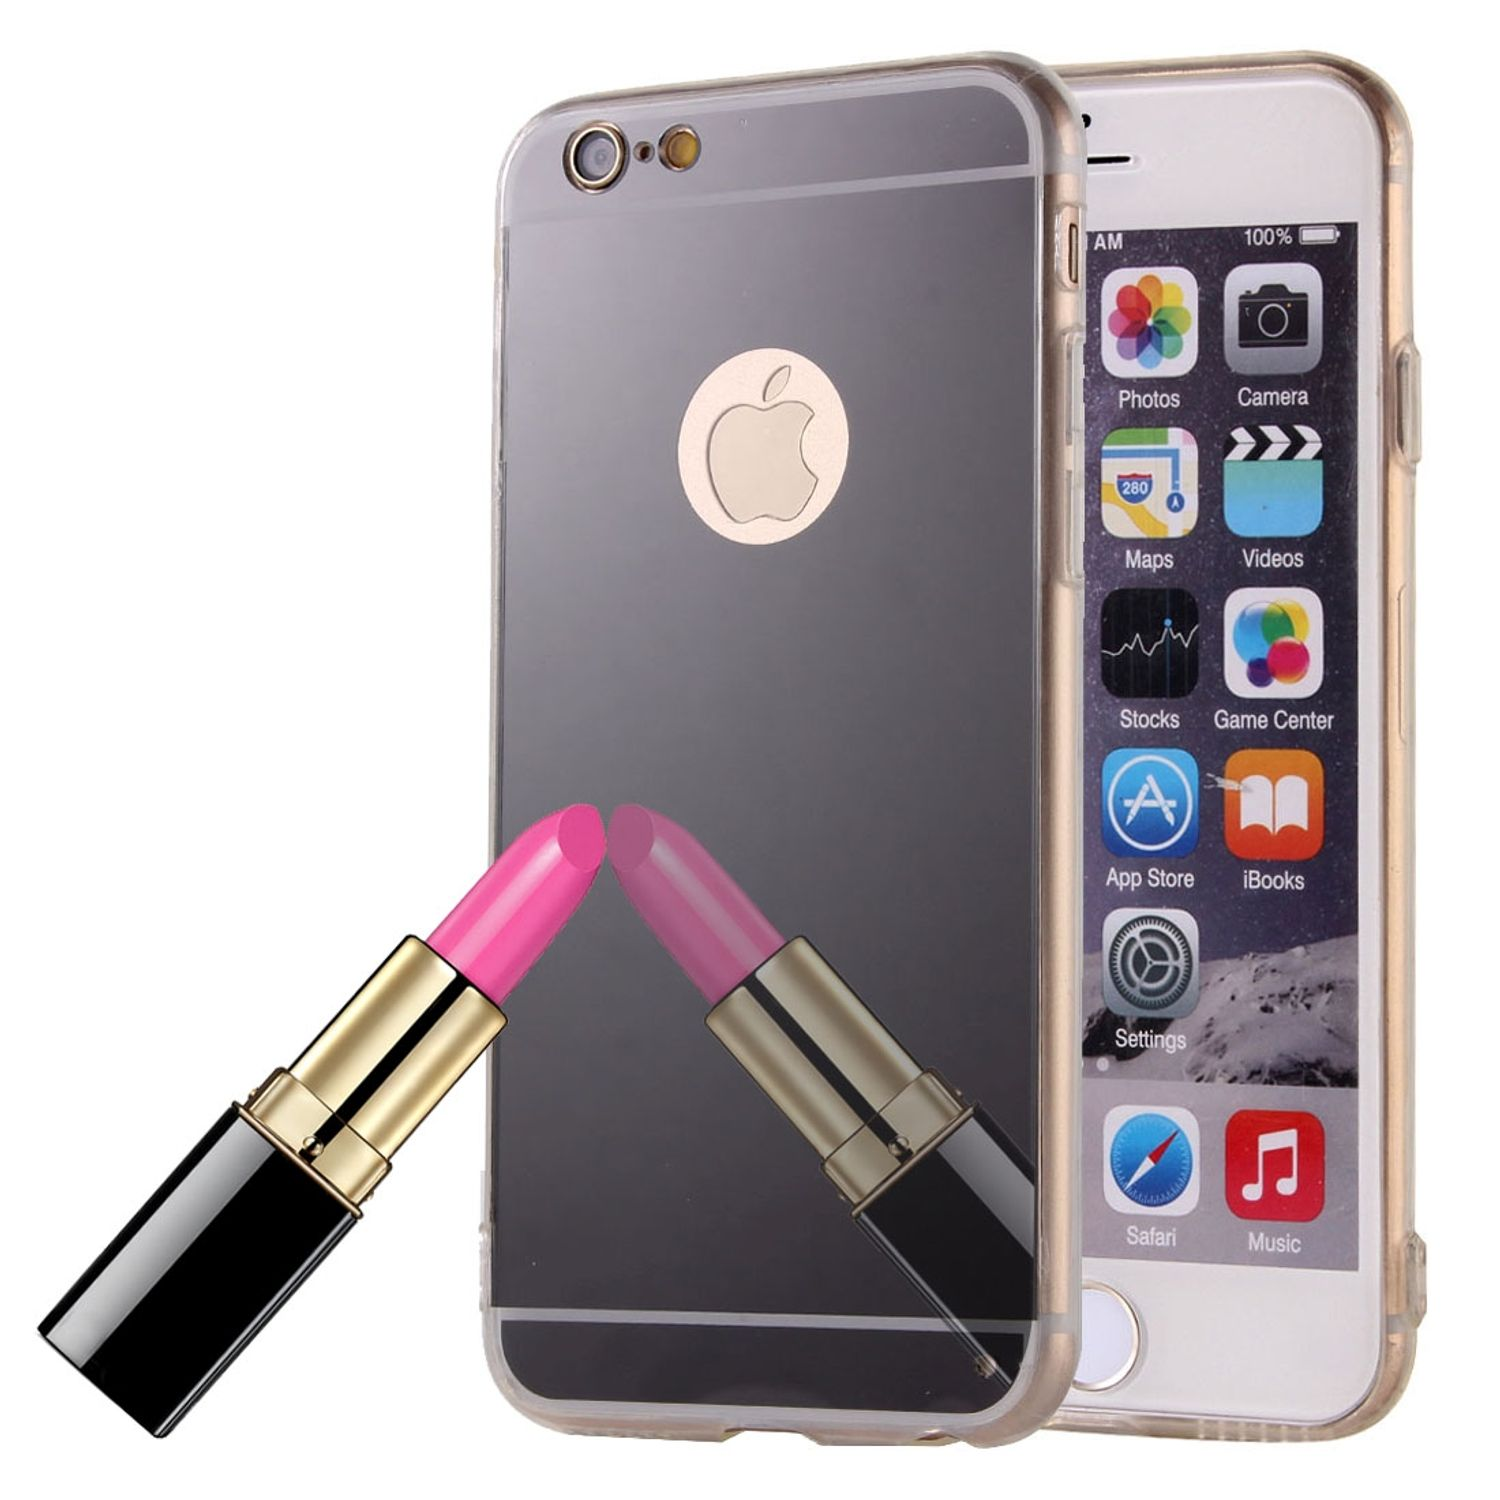 apple iphone 6 6s plus handy h lle spiegel mirror soft case schutz cover schwarz. Black Bedroom Furniture Sets. Home Design Ideas